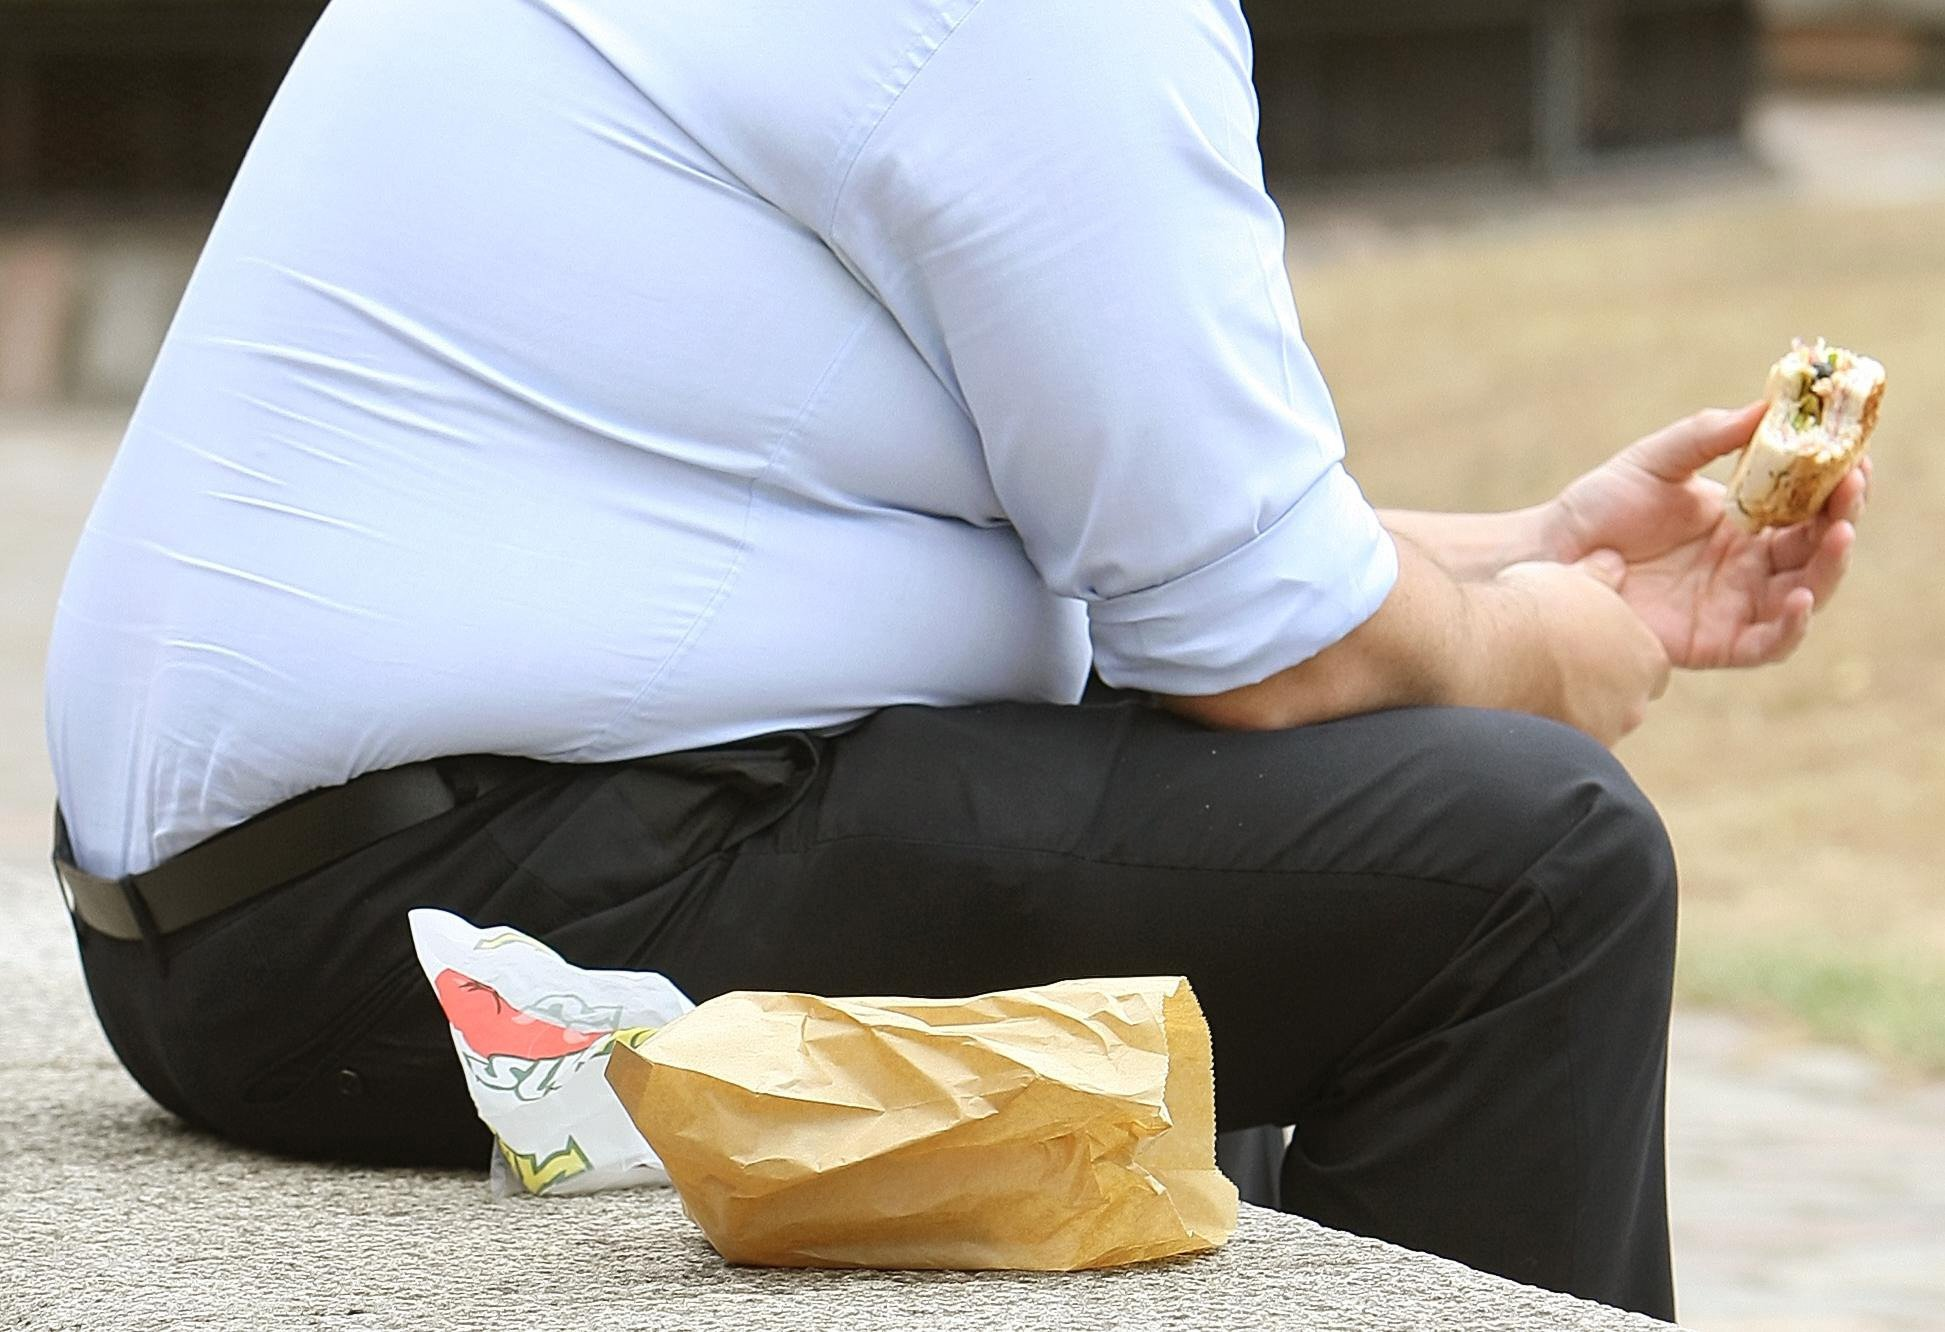 Obesity now responsible for 23,000 cancer cases every year